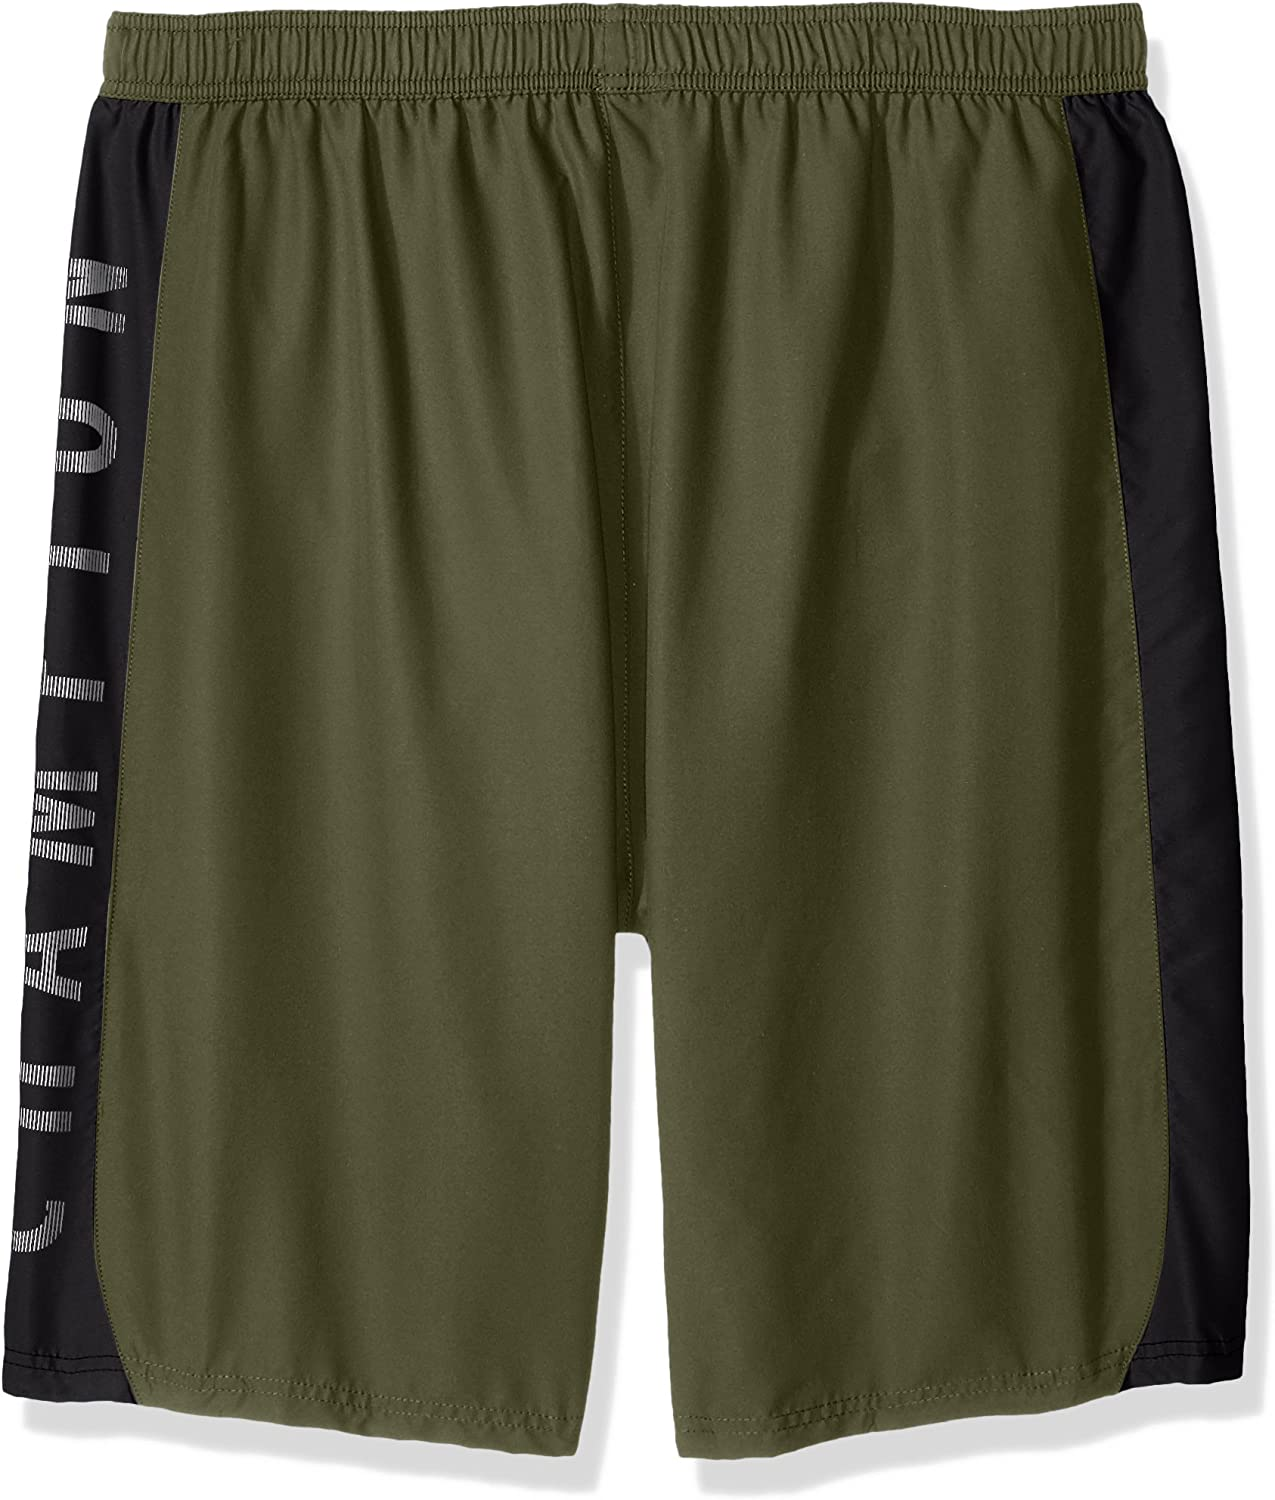 Champion Mens Big and Tall Camo Embroidered Swim Trunk